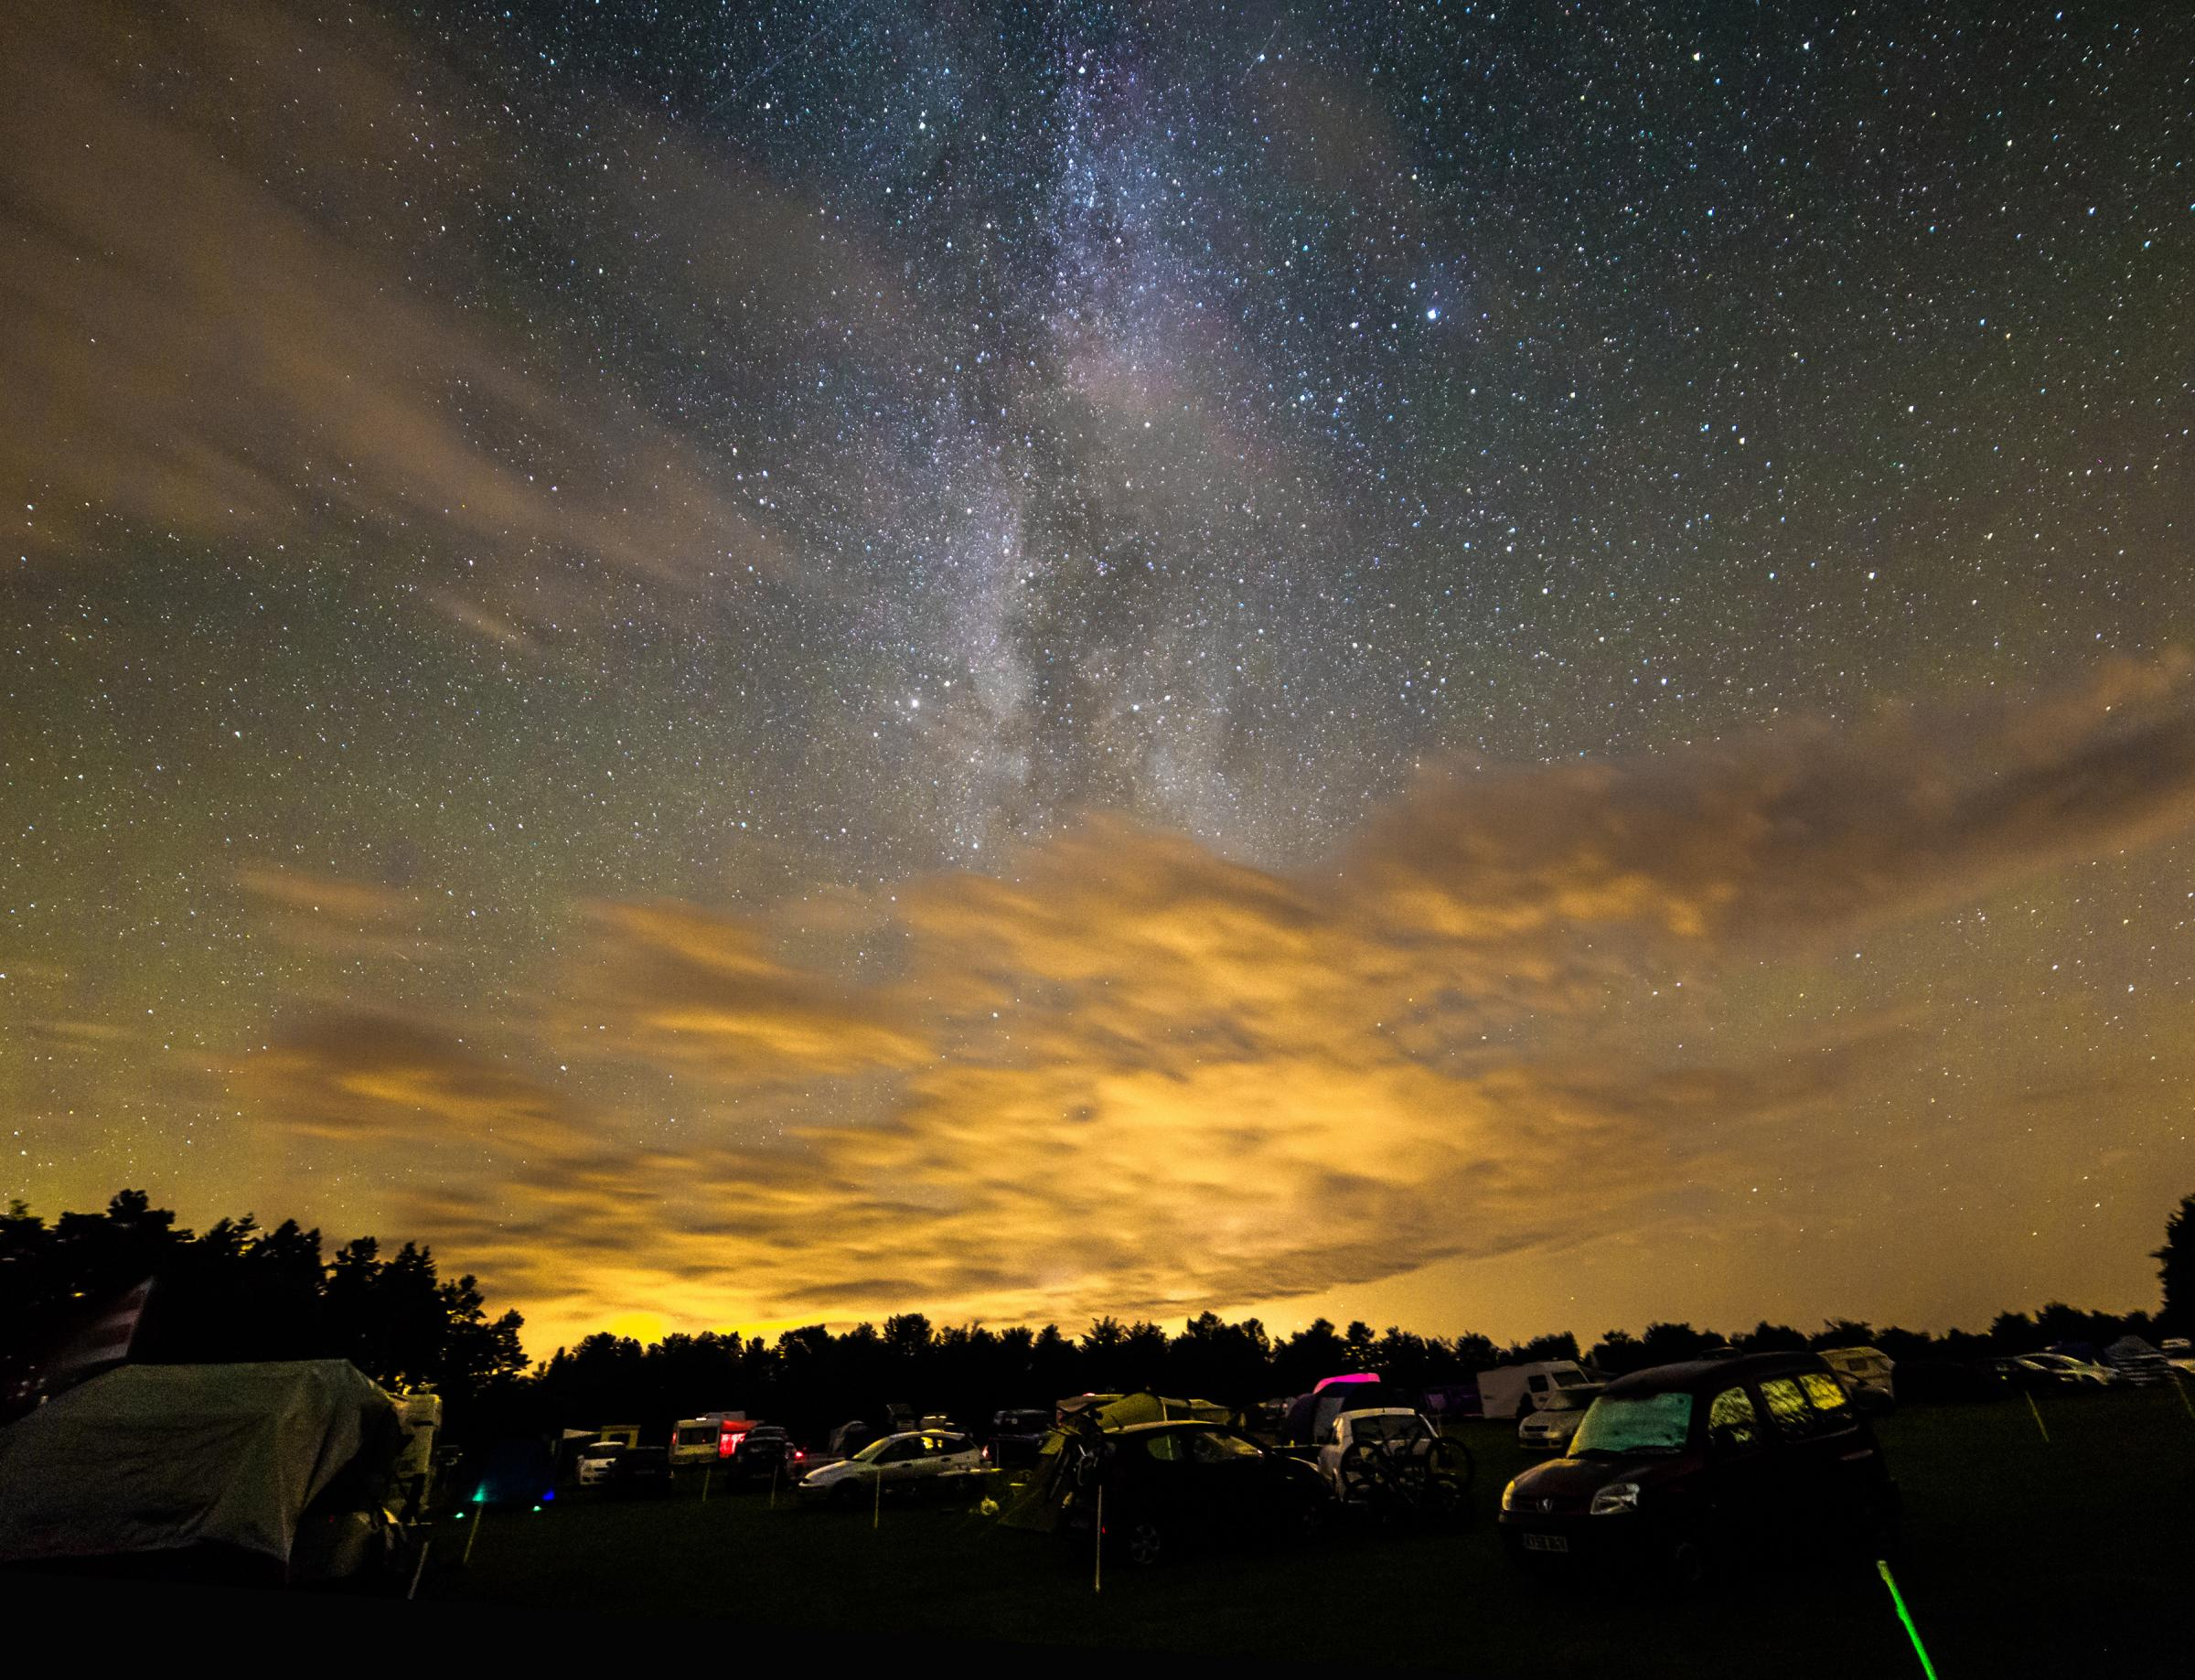 Light pollution can badly degrade the night sky and rob us of our starry skies and view of the Milky Way.